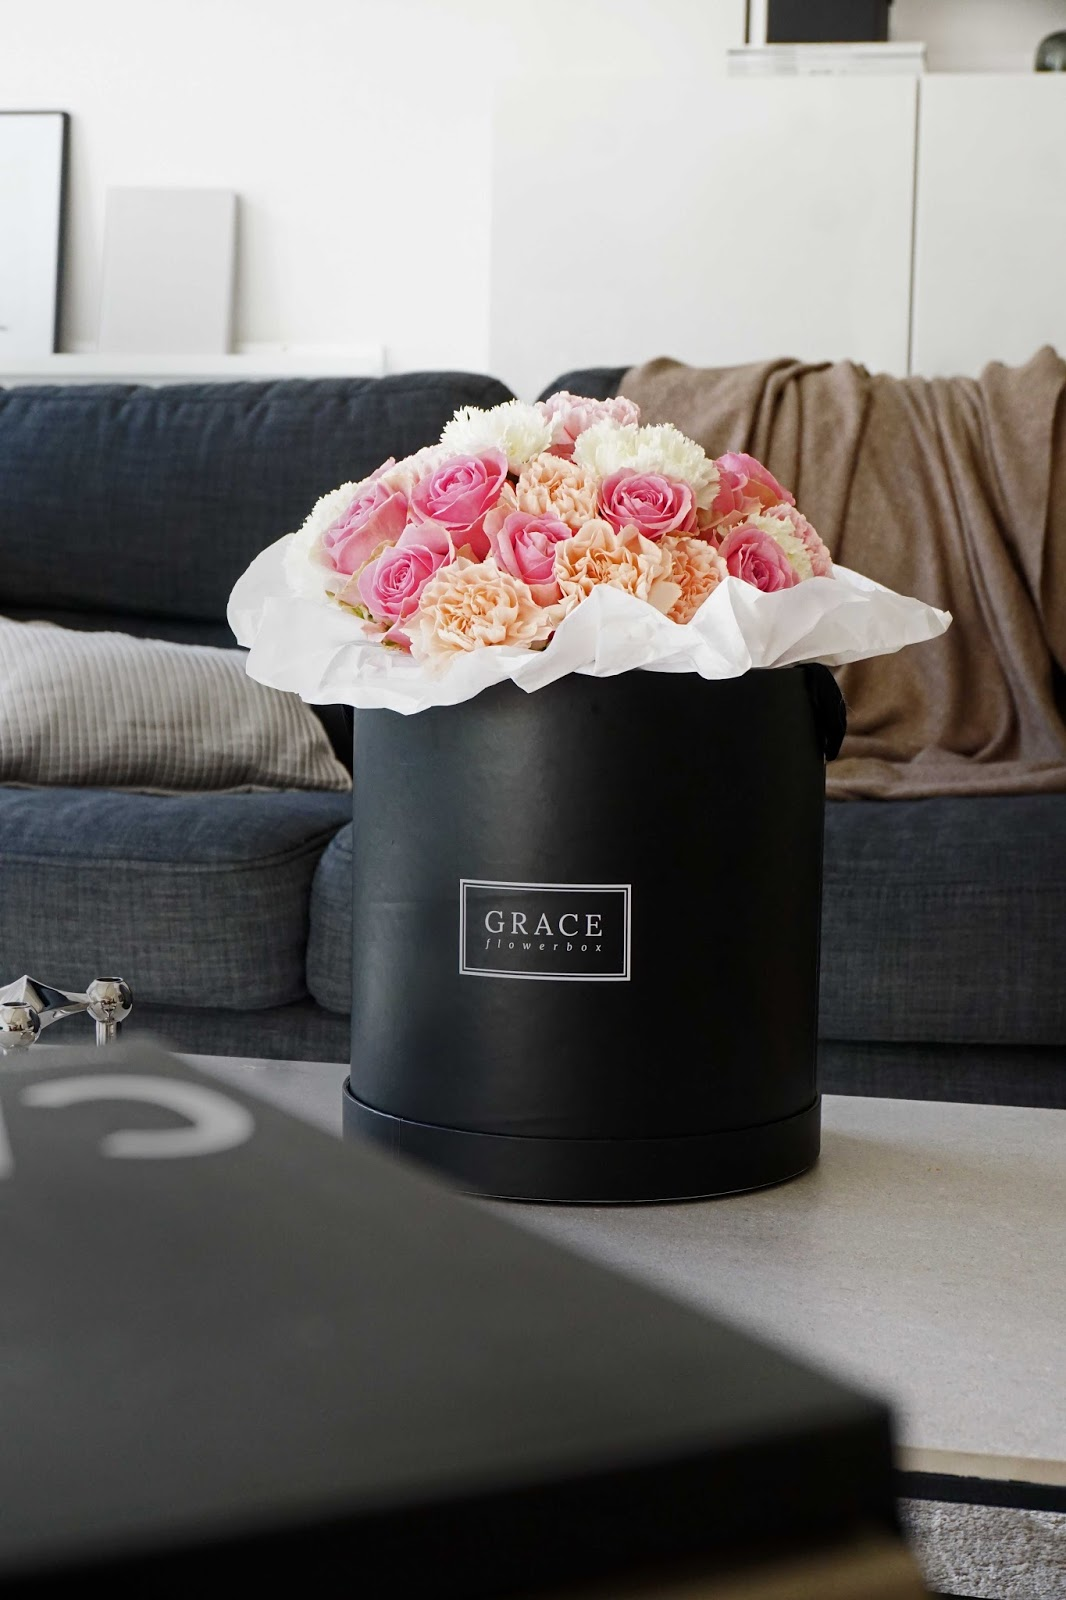 spread the love und grace flowerbox give away s t i l r e i c h blog. Black Bedroom Furniture Sets. Home Design Ideas